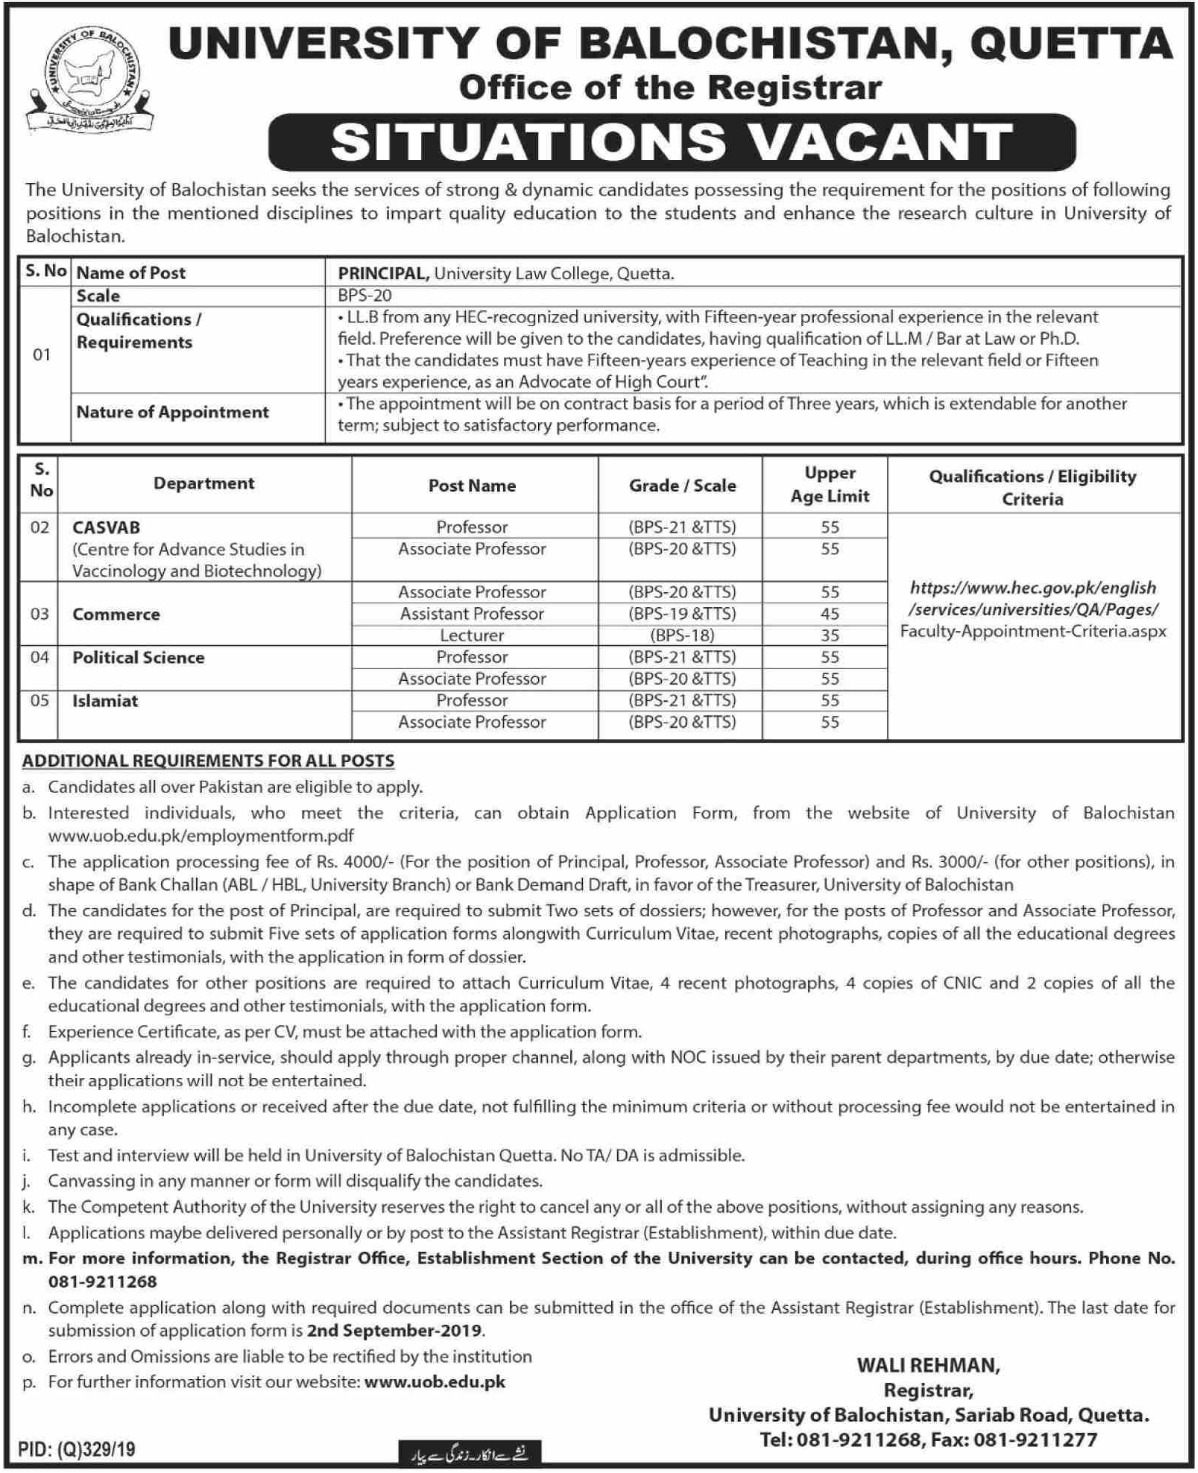 University of Balochistan Quetta Jobs 2019 Download Application Form